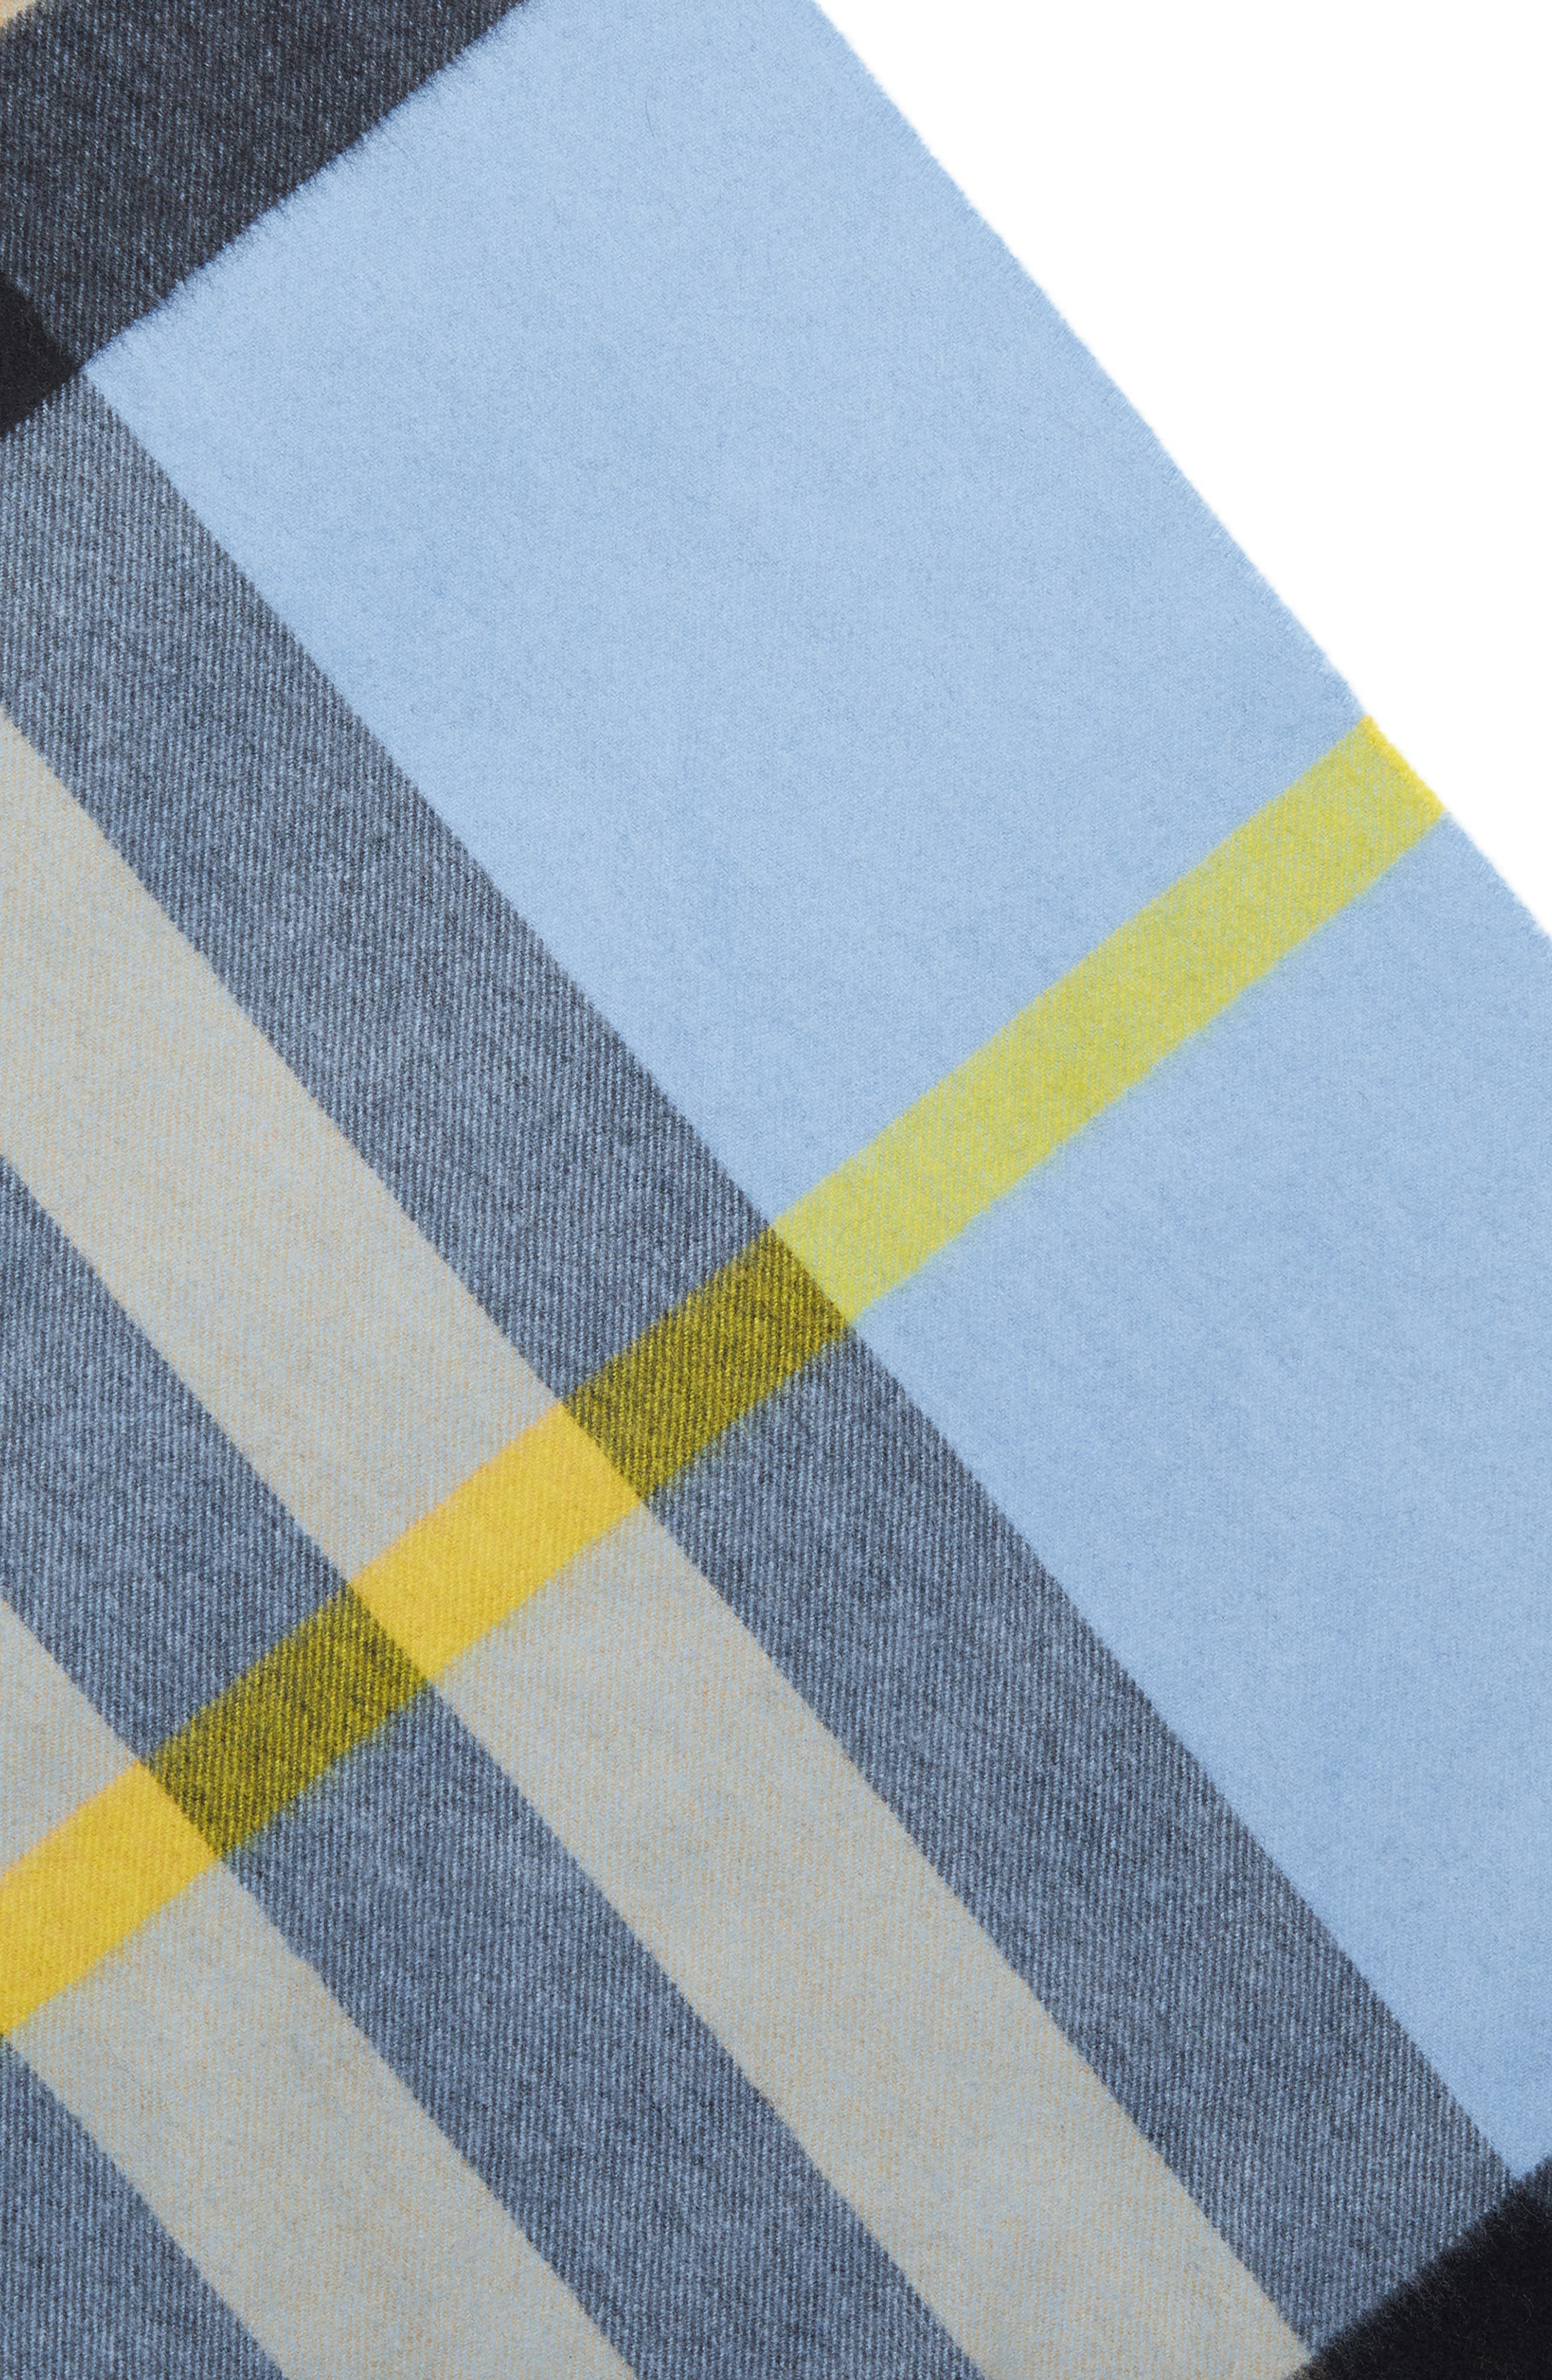 BURBERRY,                             Mega Check Cashmere Scarf,                             Alternate thumbnail 4, color,                             PALE CARBON BLUE